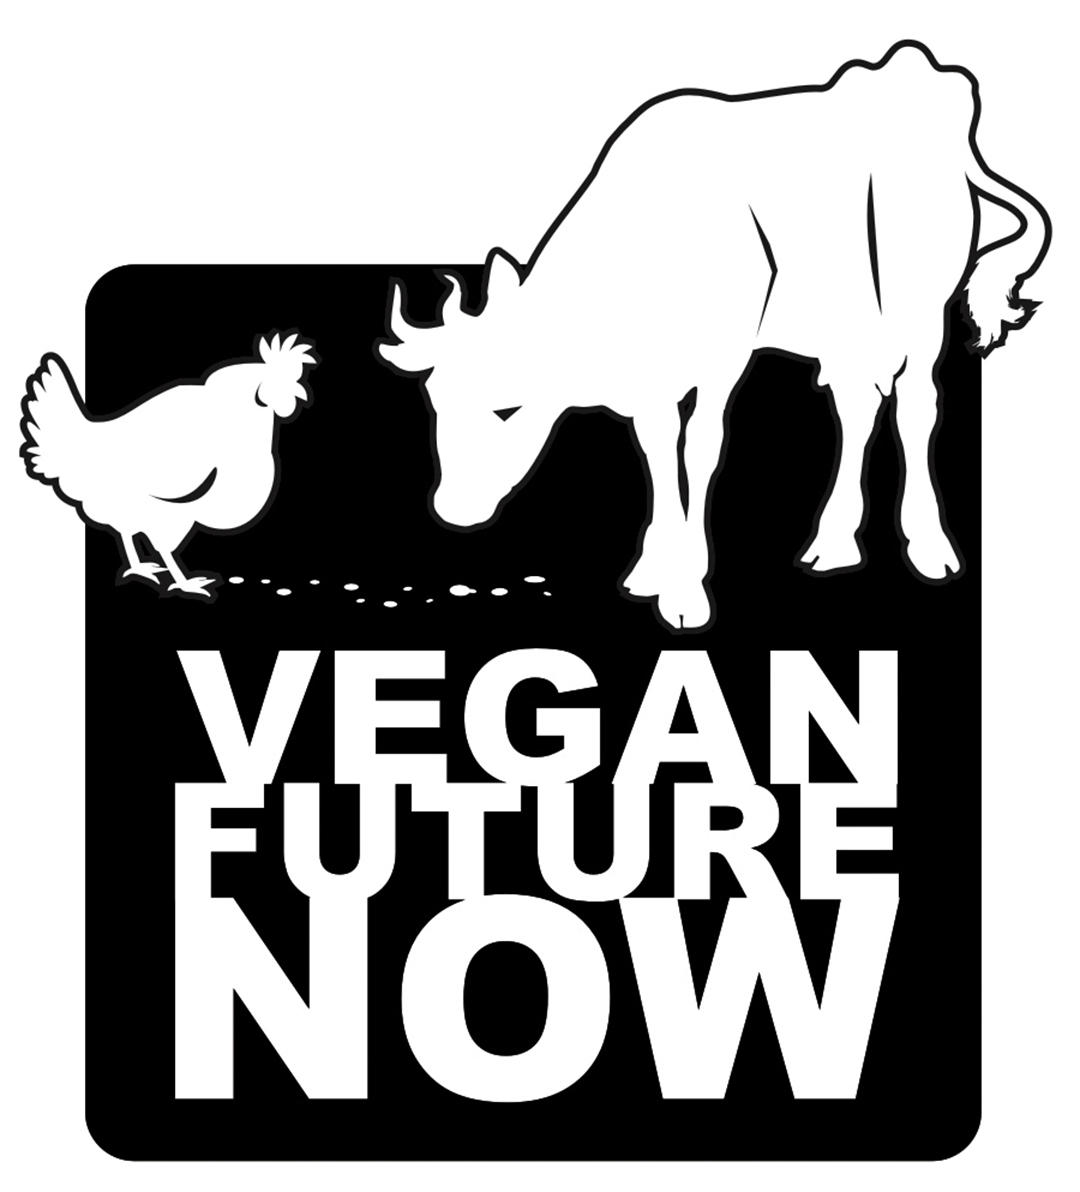 Vegan Future Now